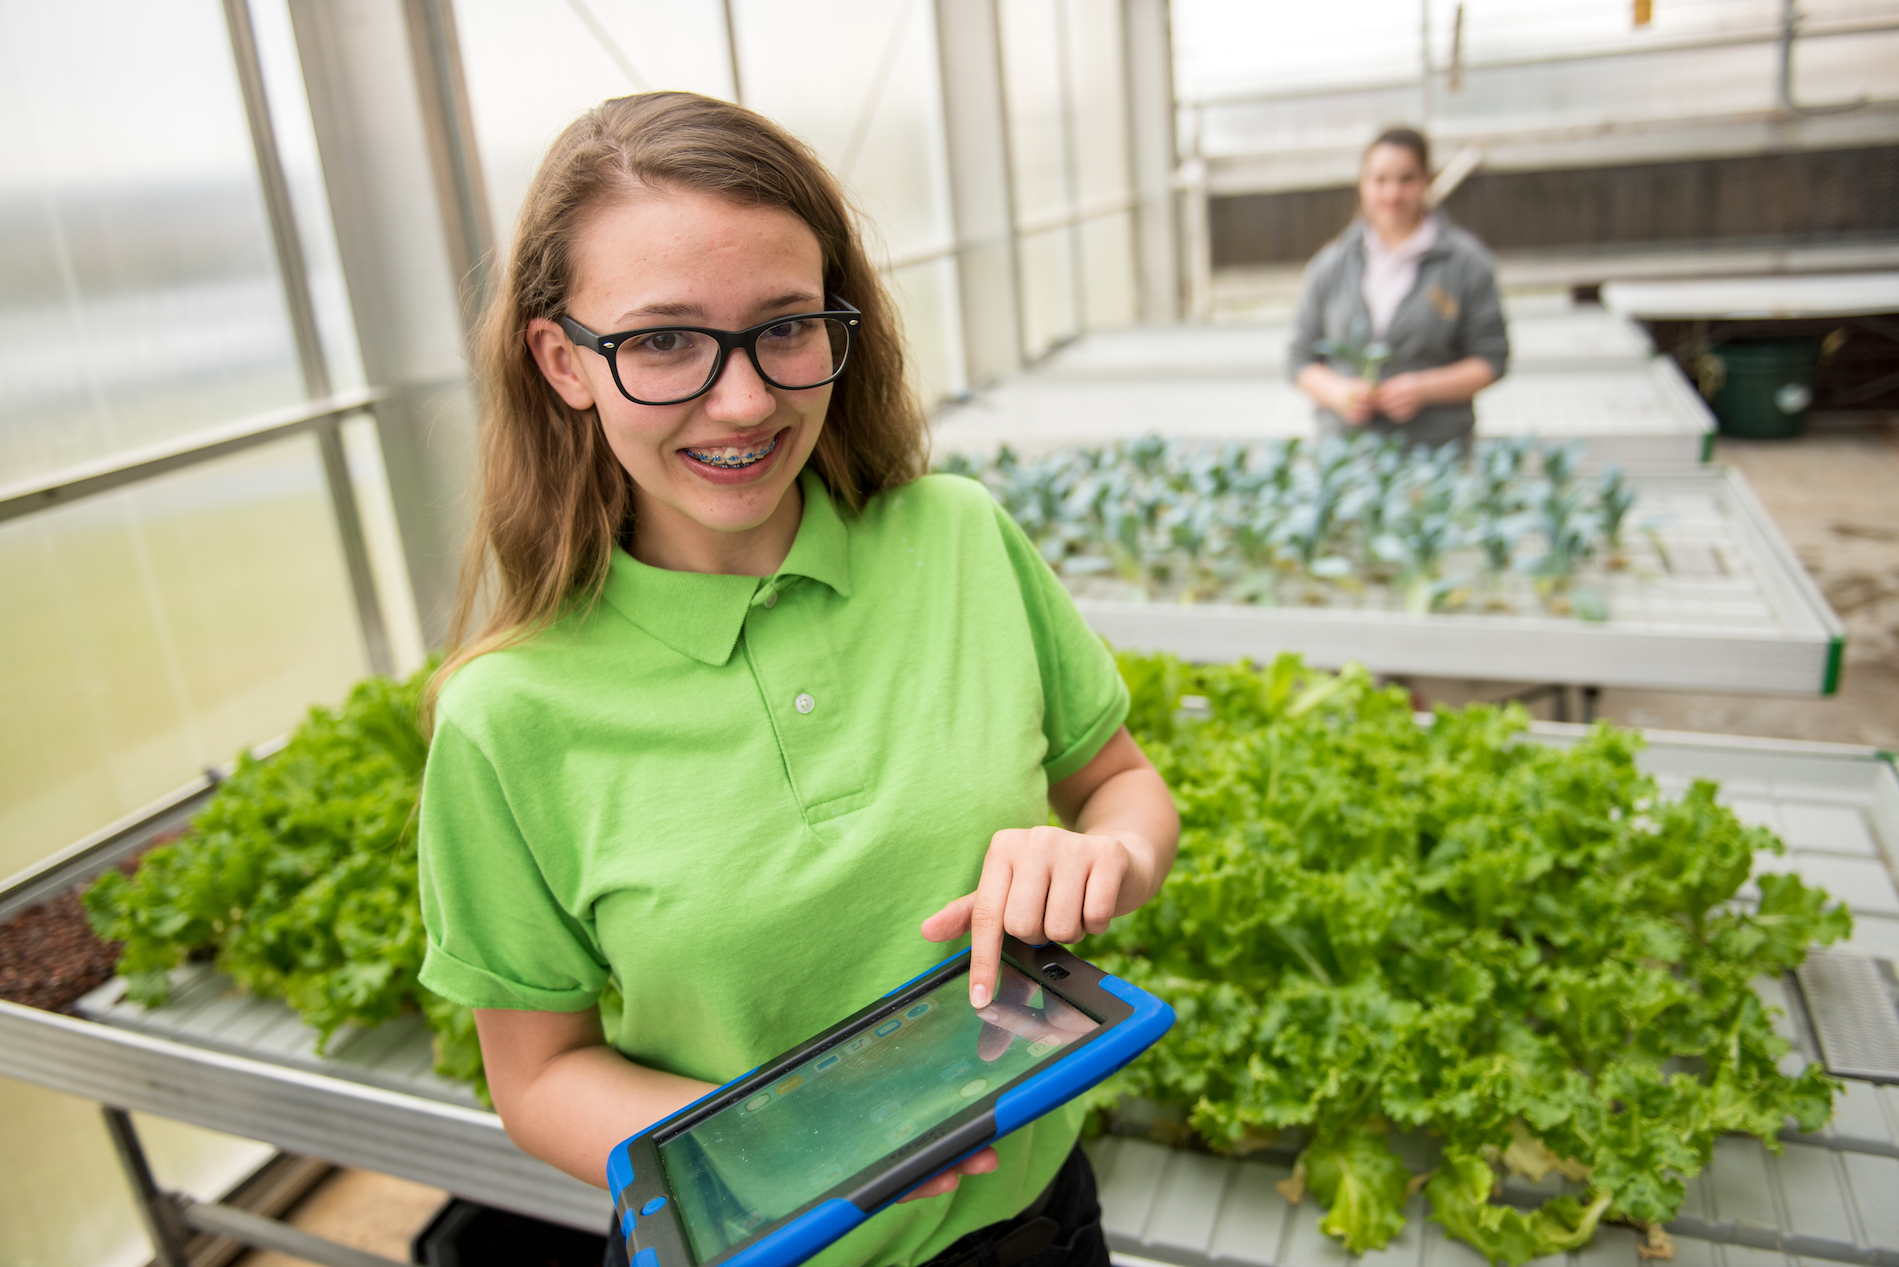 Agriculture and natural resources career and technical education pathway